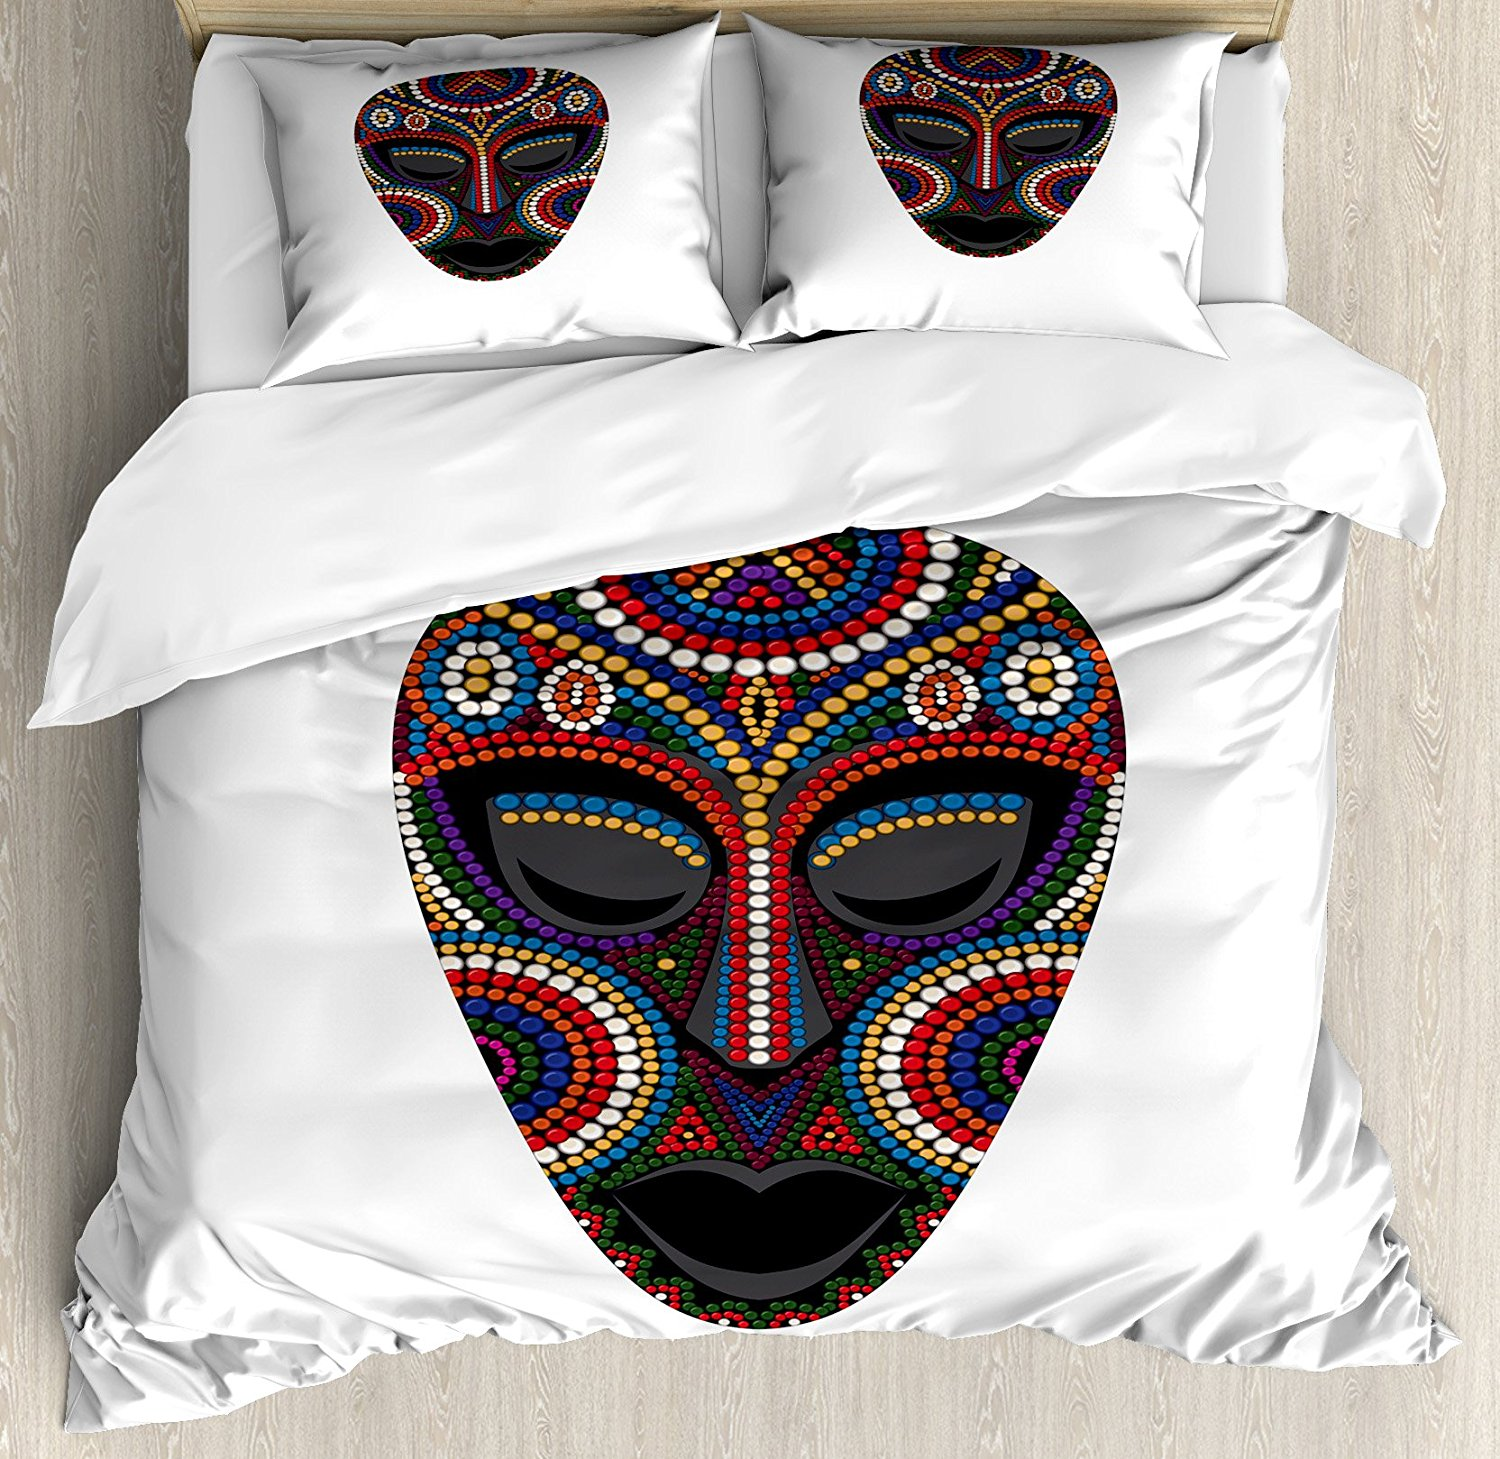 Art Duvet Cover Set Ethnic Colorful African Mask Oriental Folklore Inspiration Tribal Cultures Illustration 4 Piece